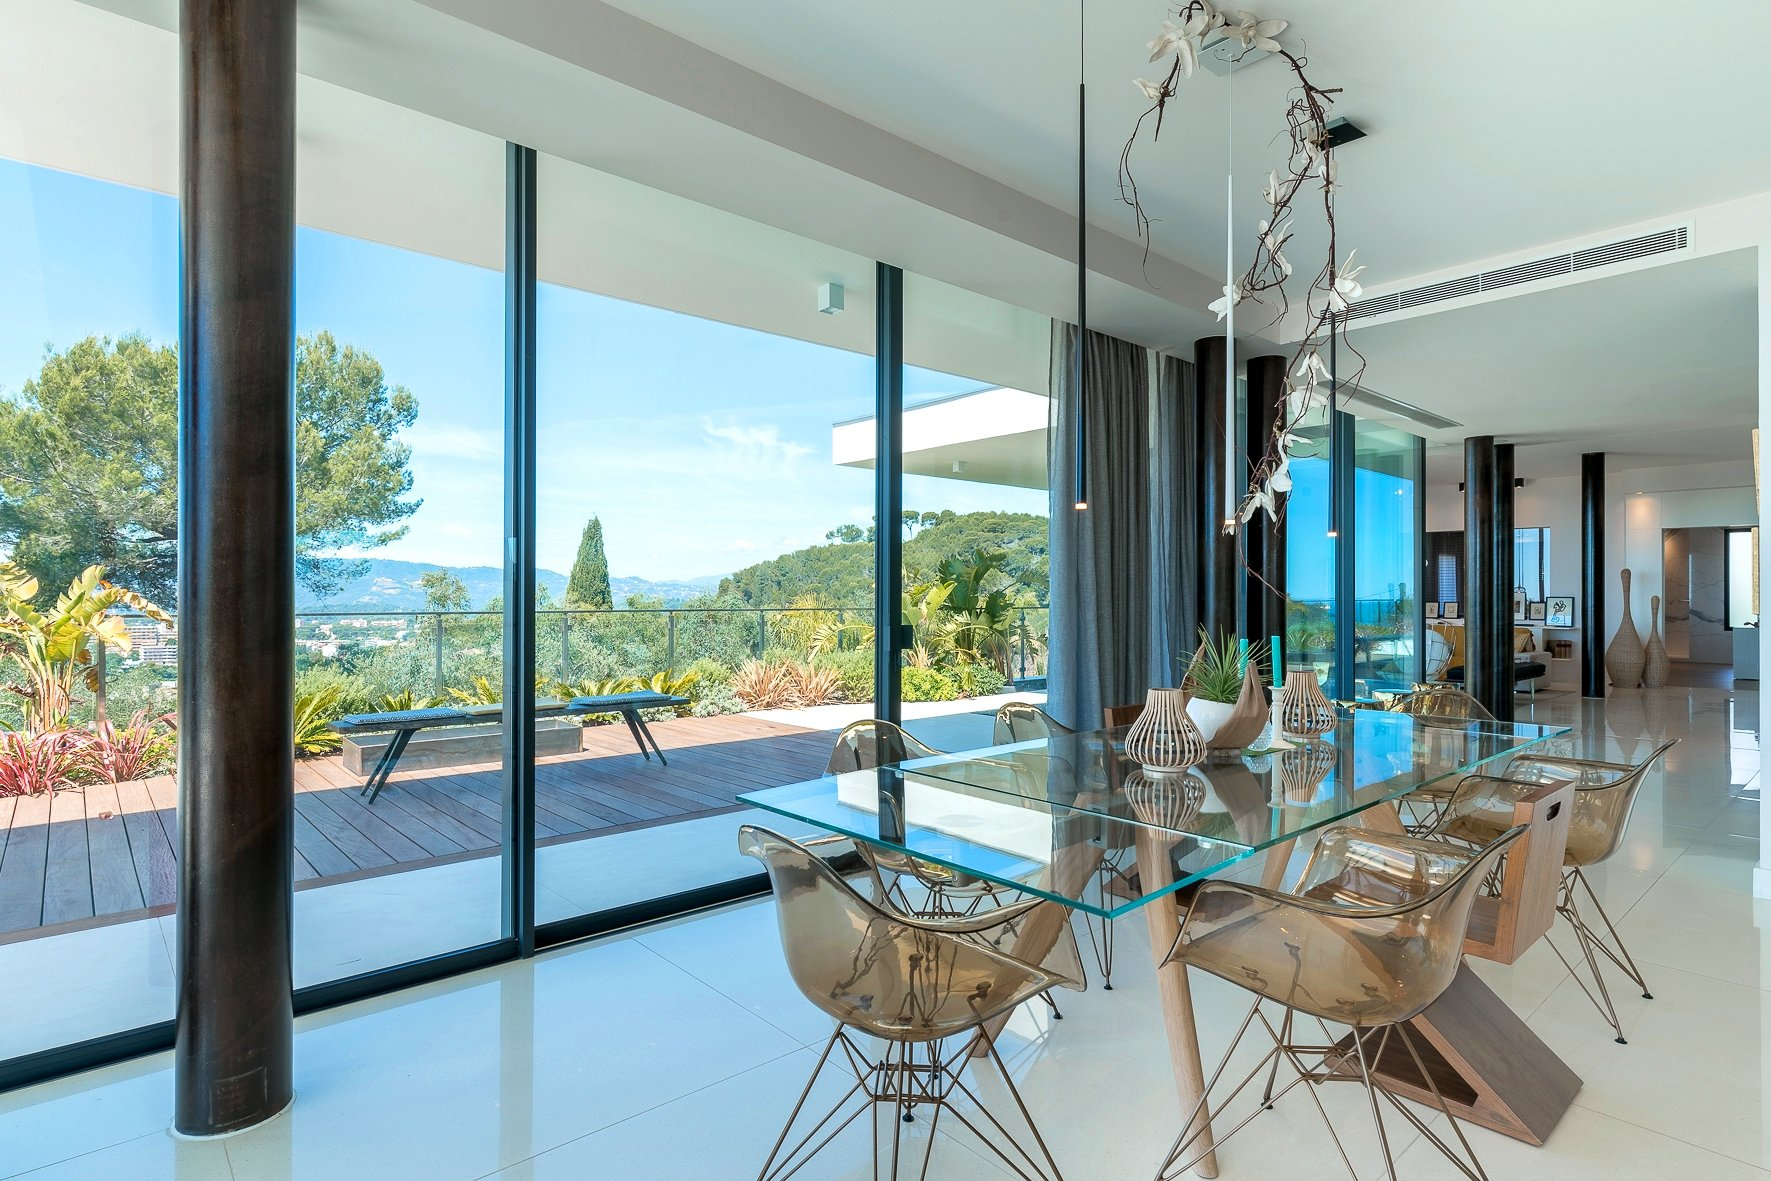 LE CANNET HILLS - STUNNING CONTEMPORARY VILLA